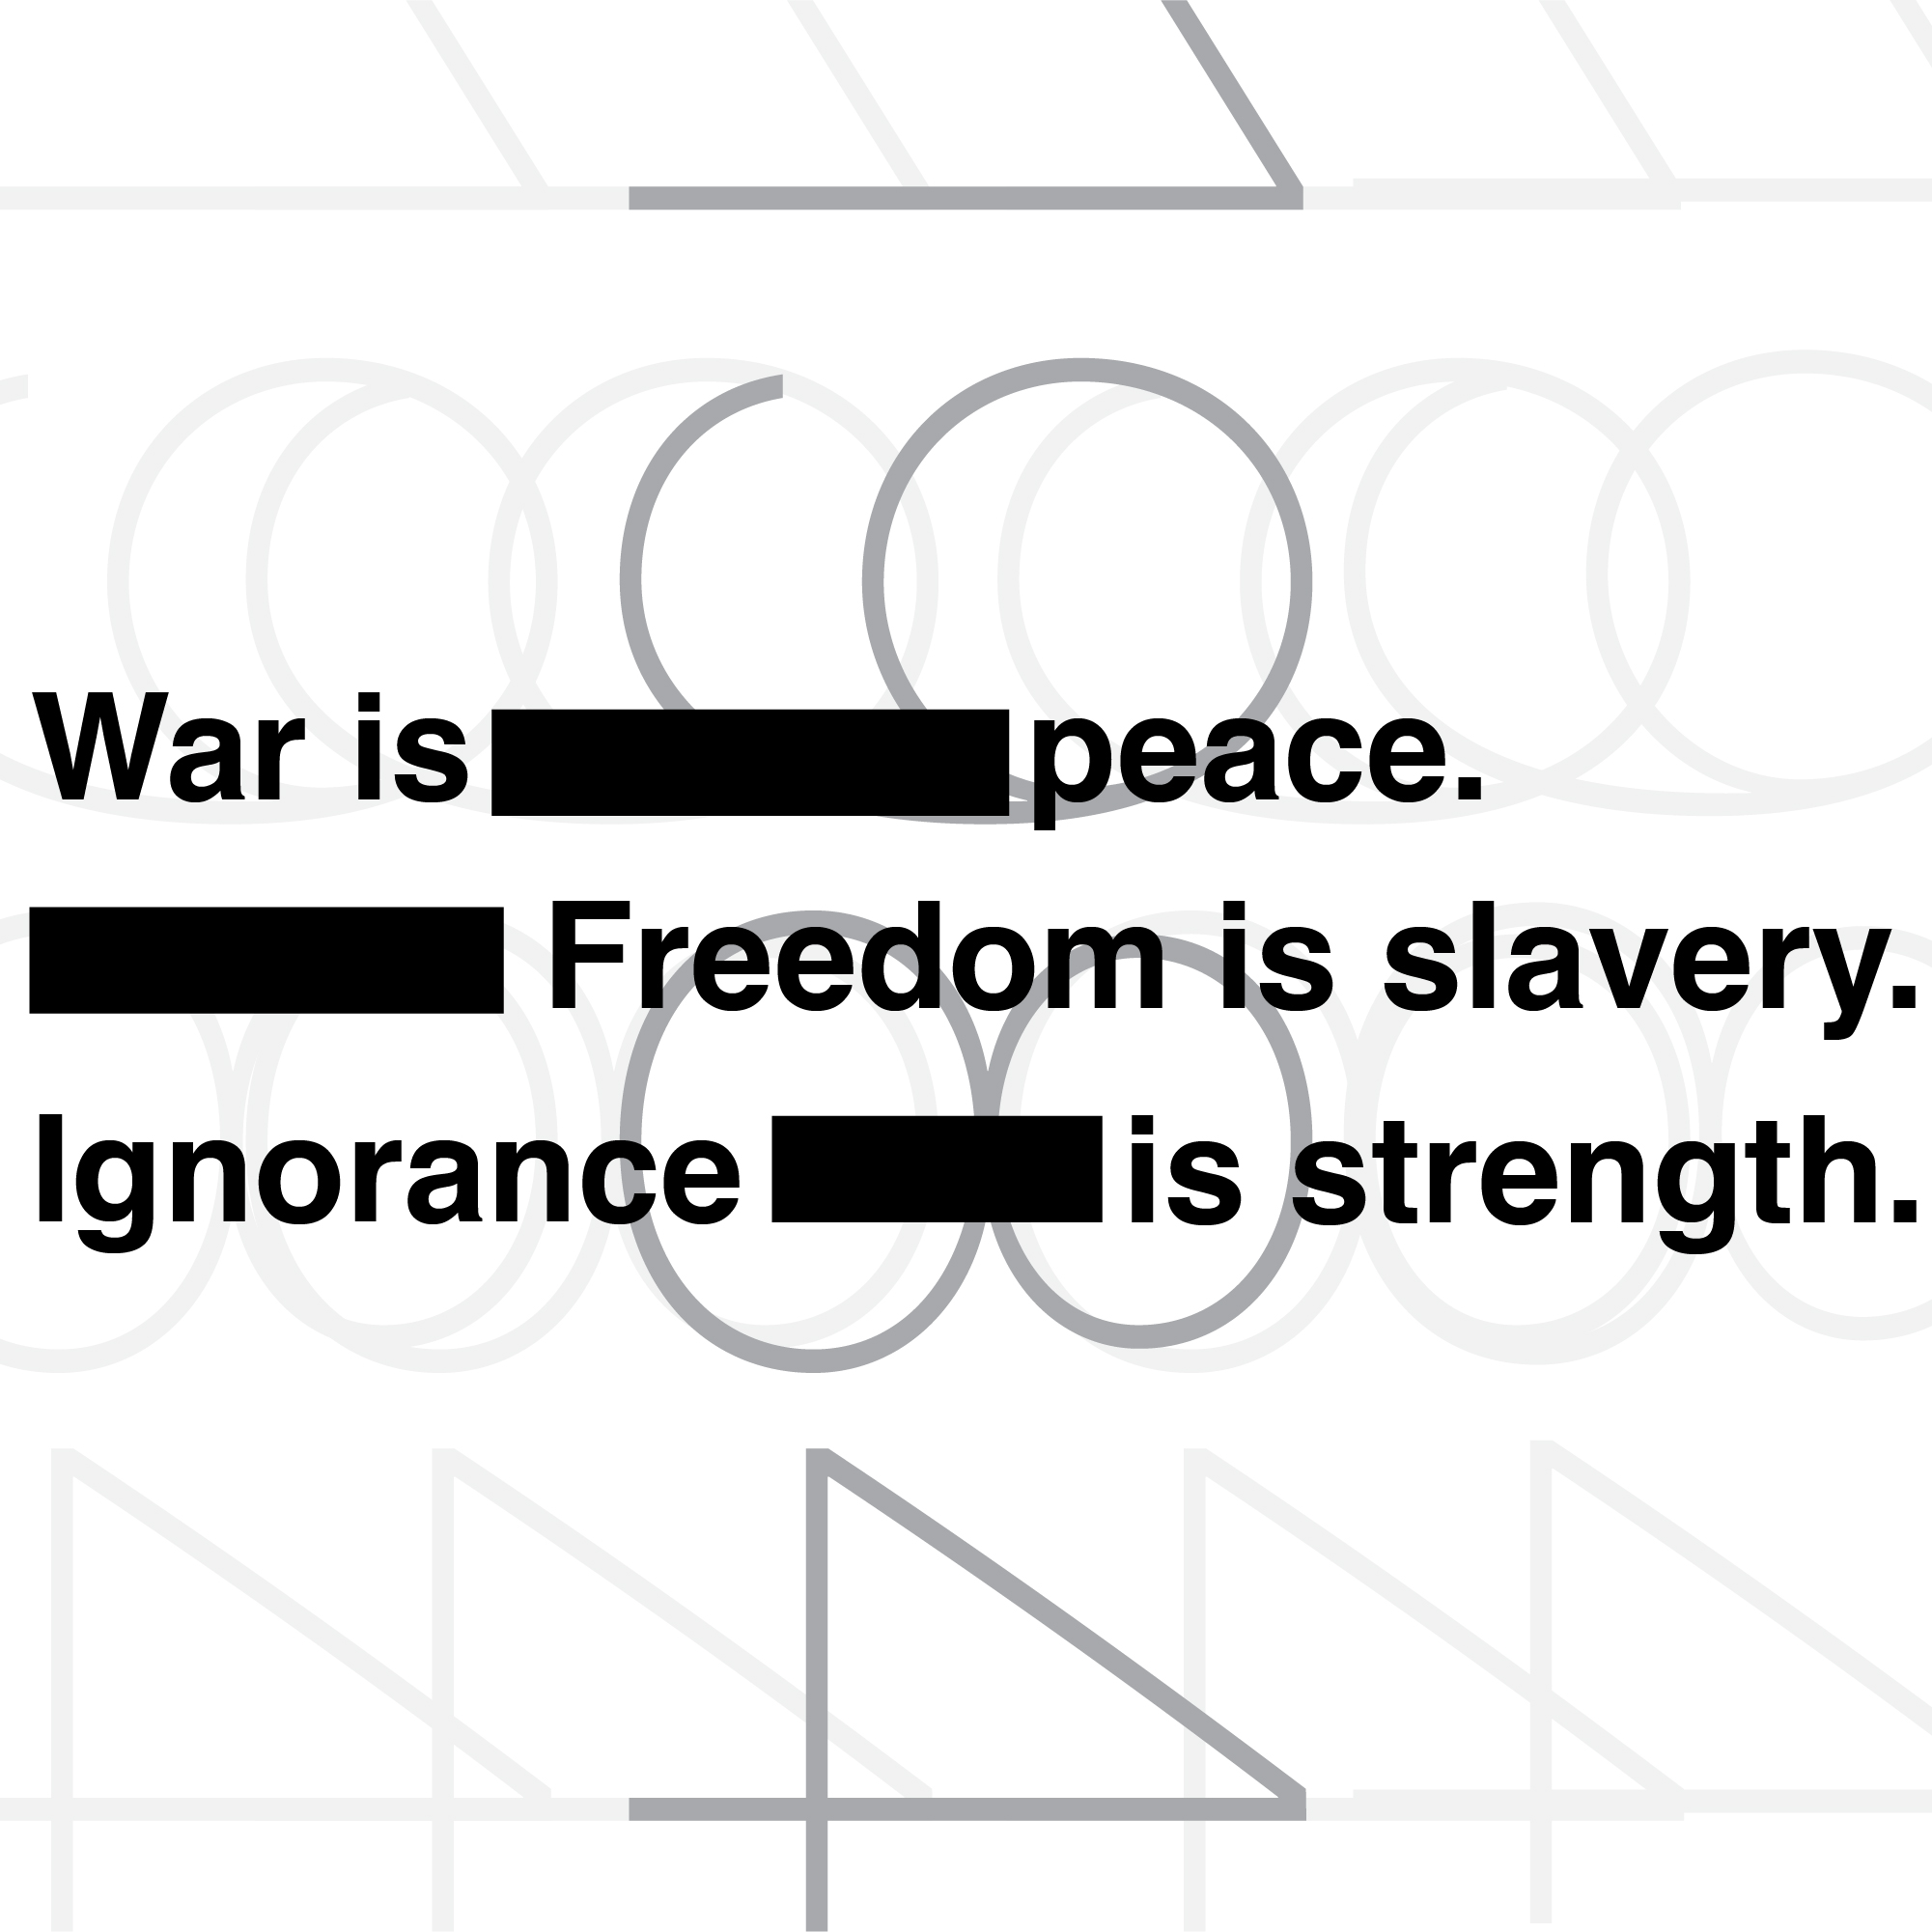 War is peace. Freedom is slavery. Ignorance is strength. 1984